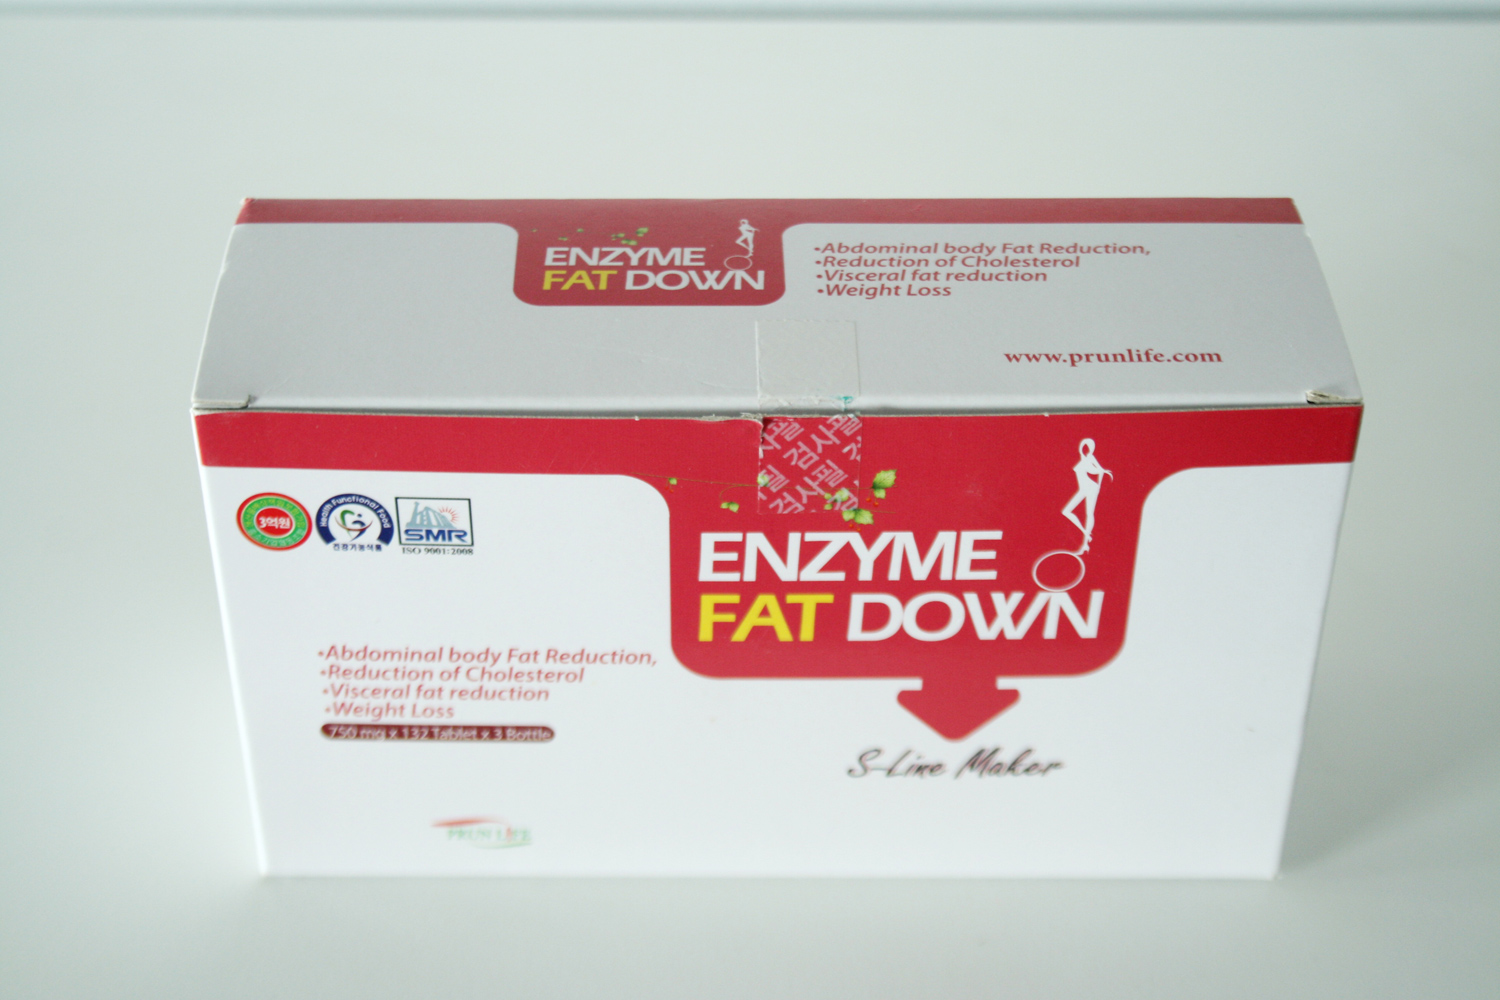 ENZYME FAT DOWN S-LINE MAKER